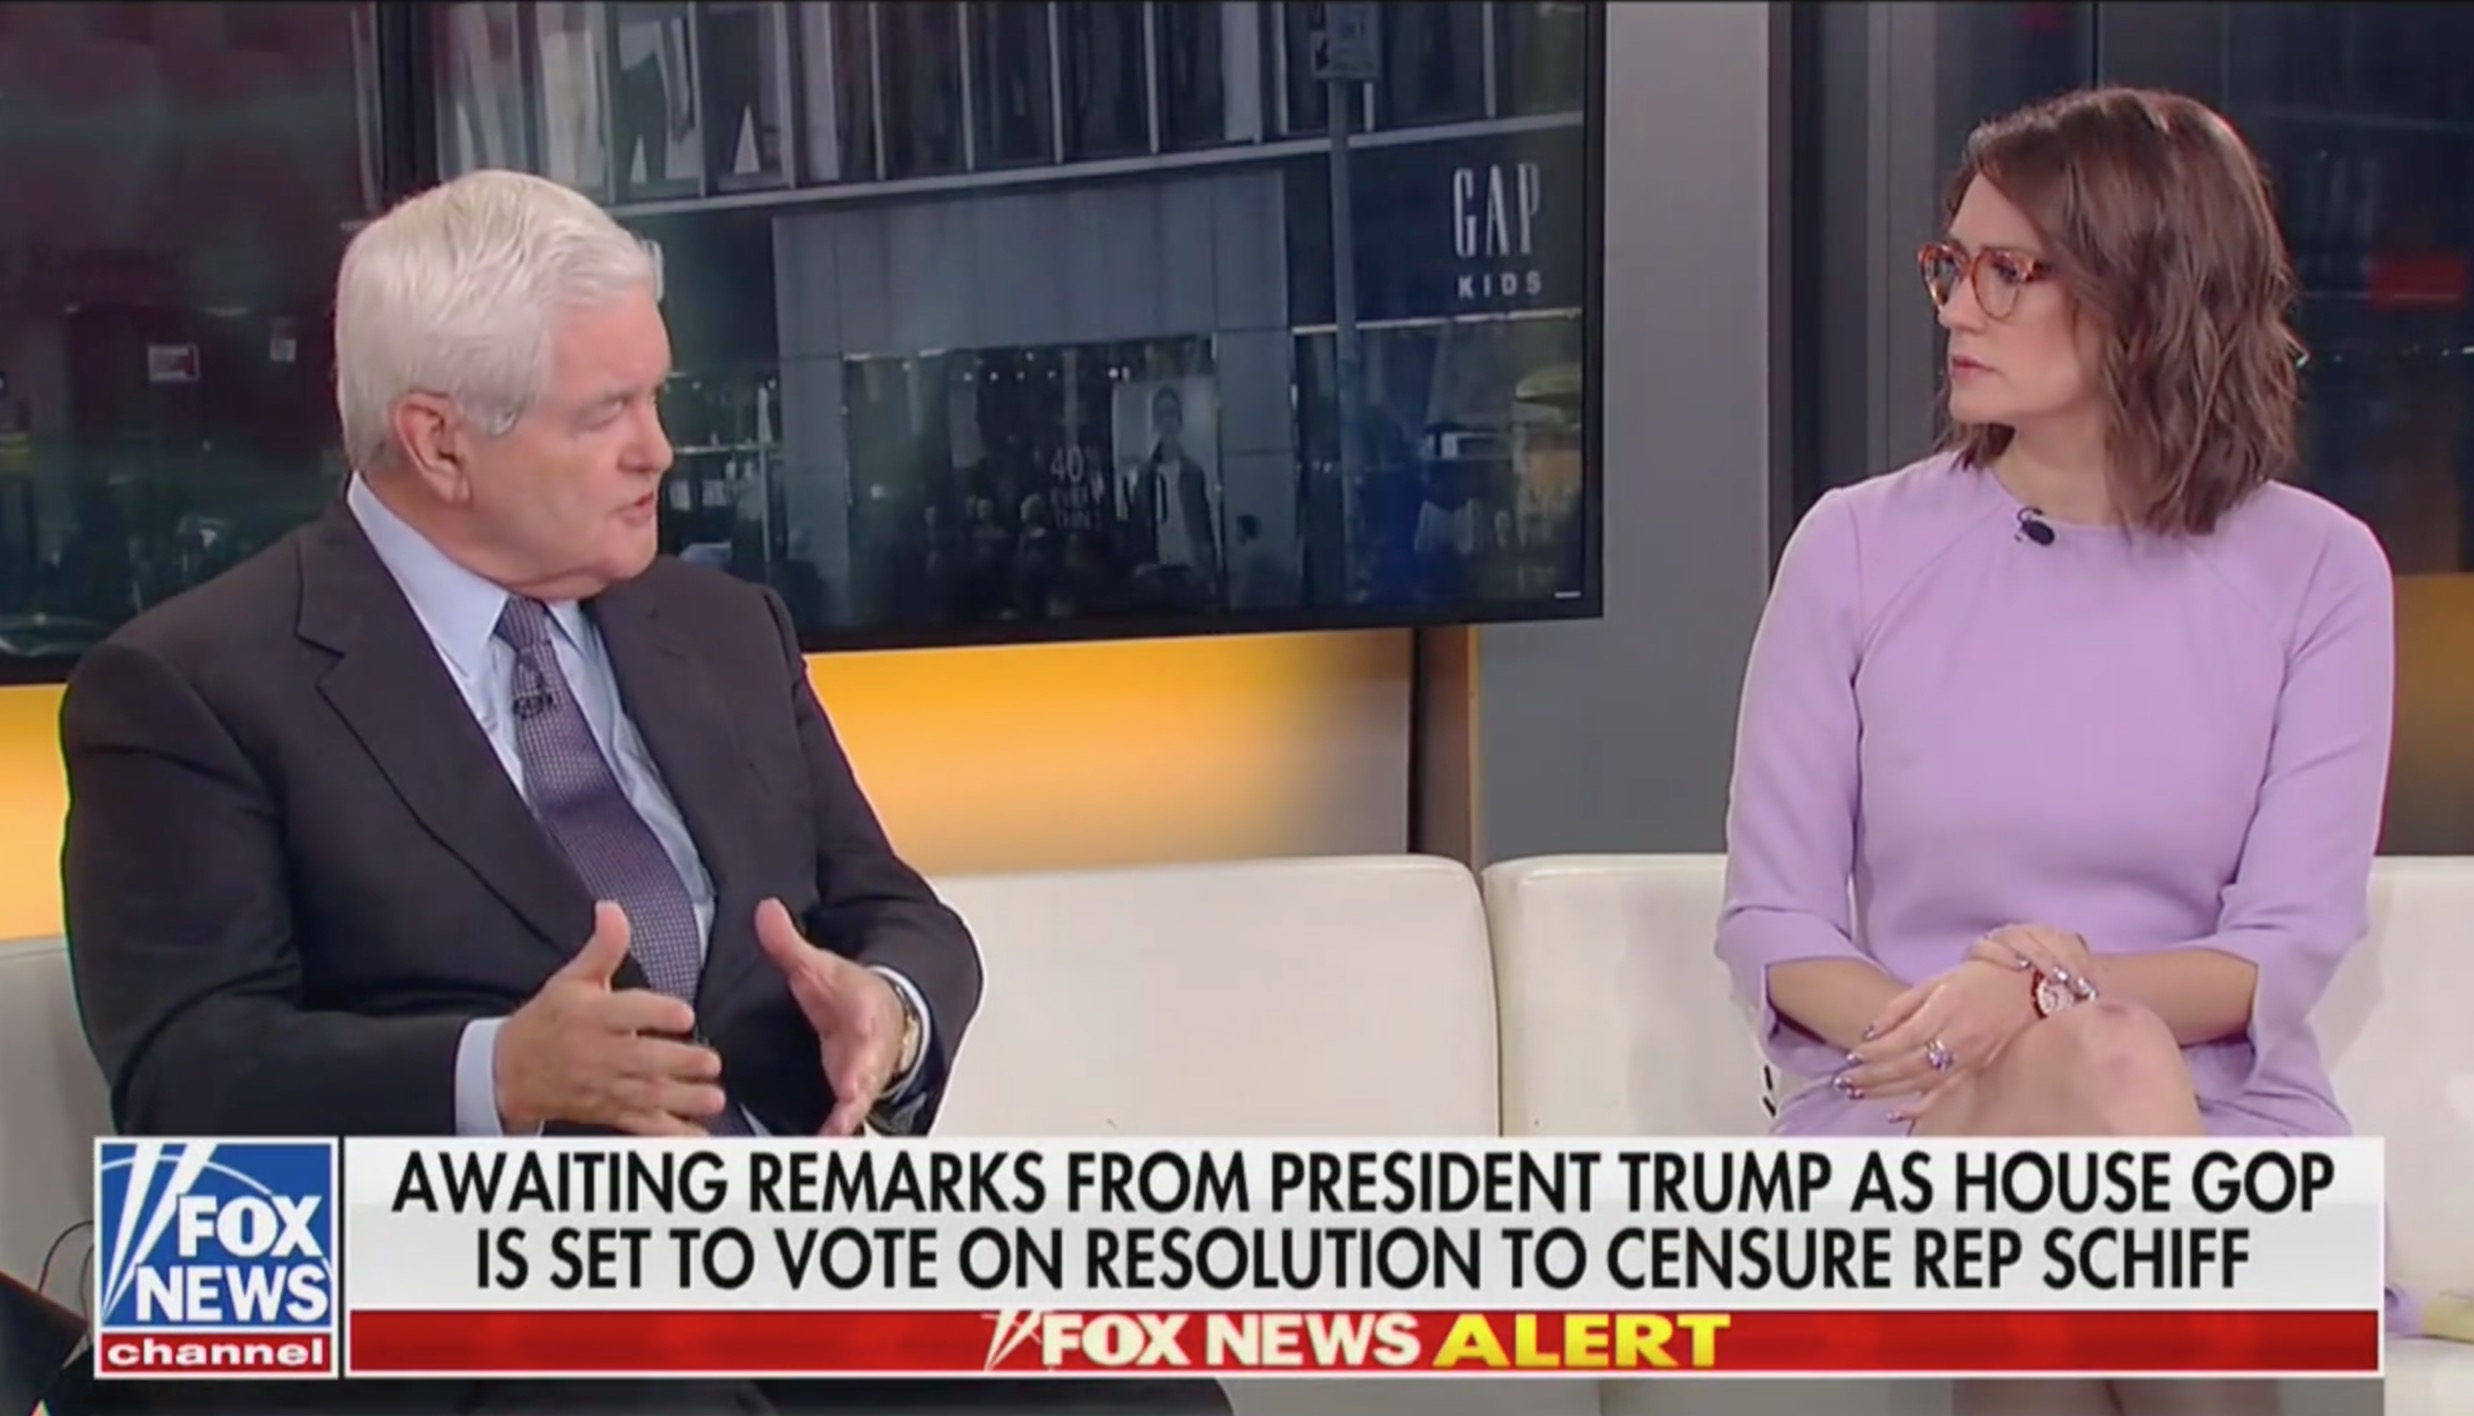 Newt Gingrich Refuses to Answer if Trump Abused Power in Clash With Fox's Tarlov: 'This is Insane'